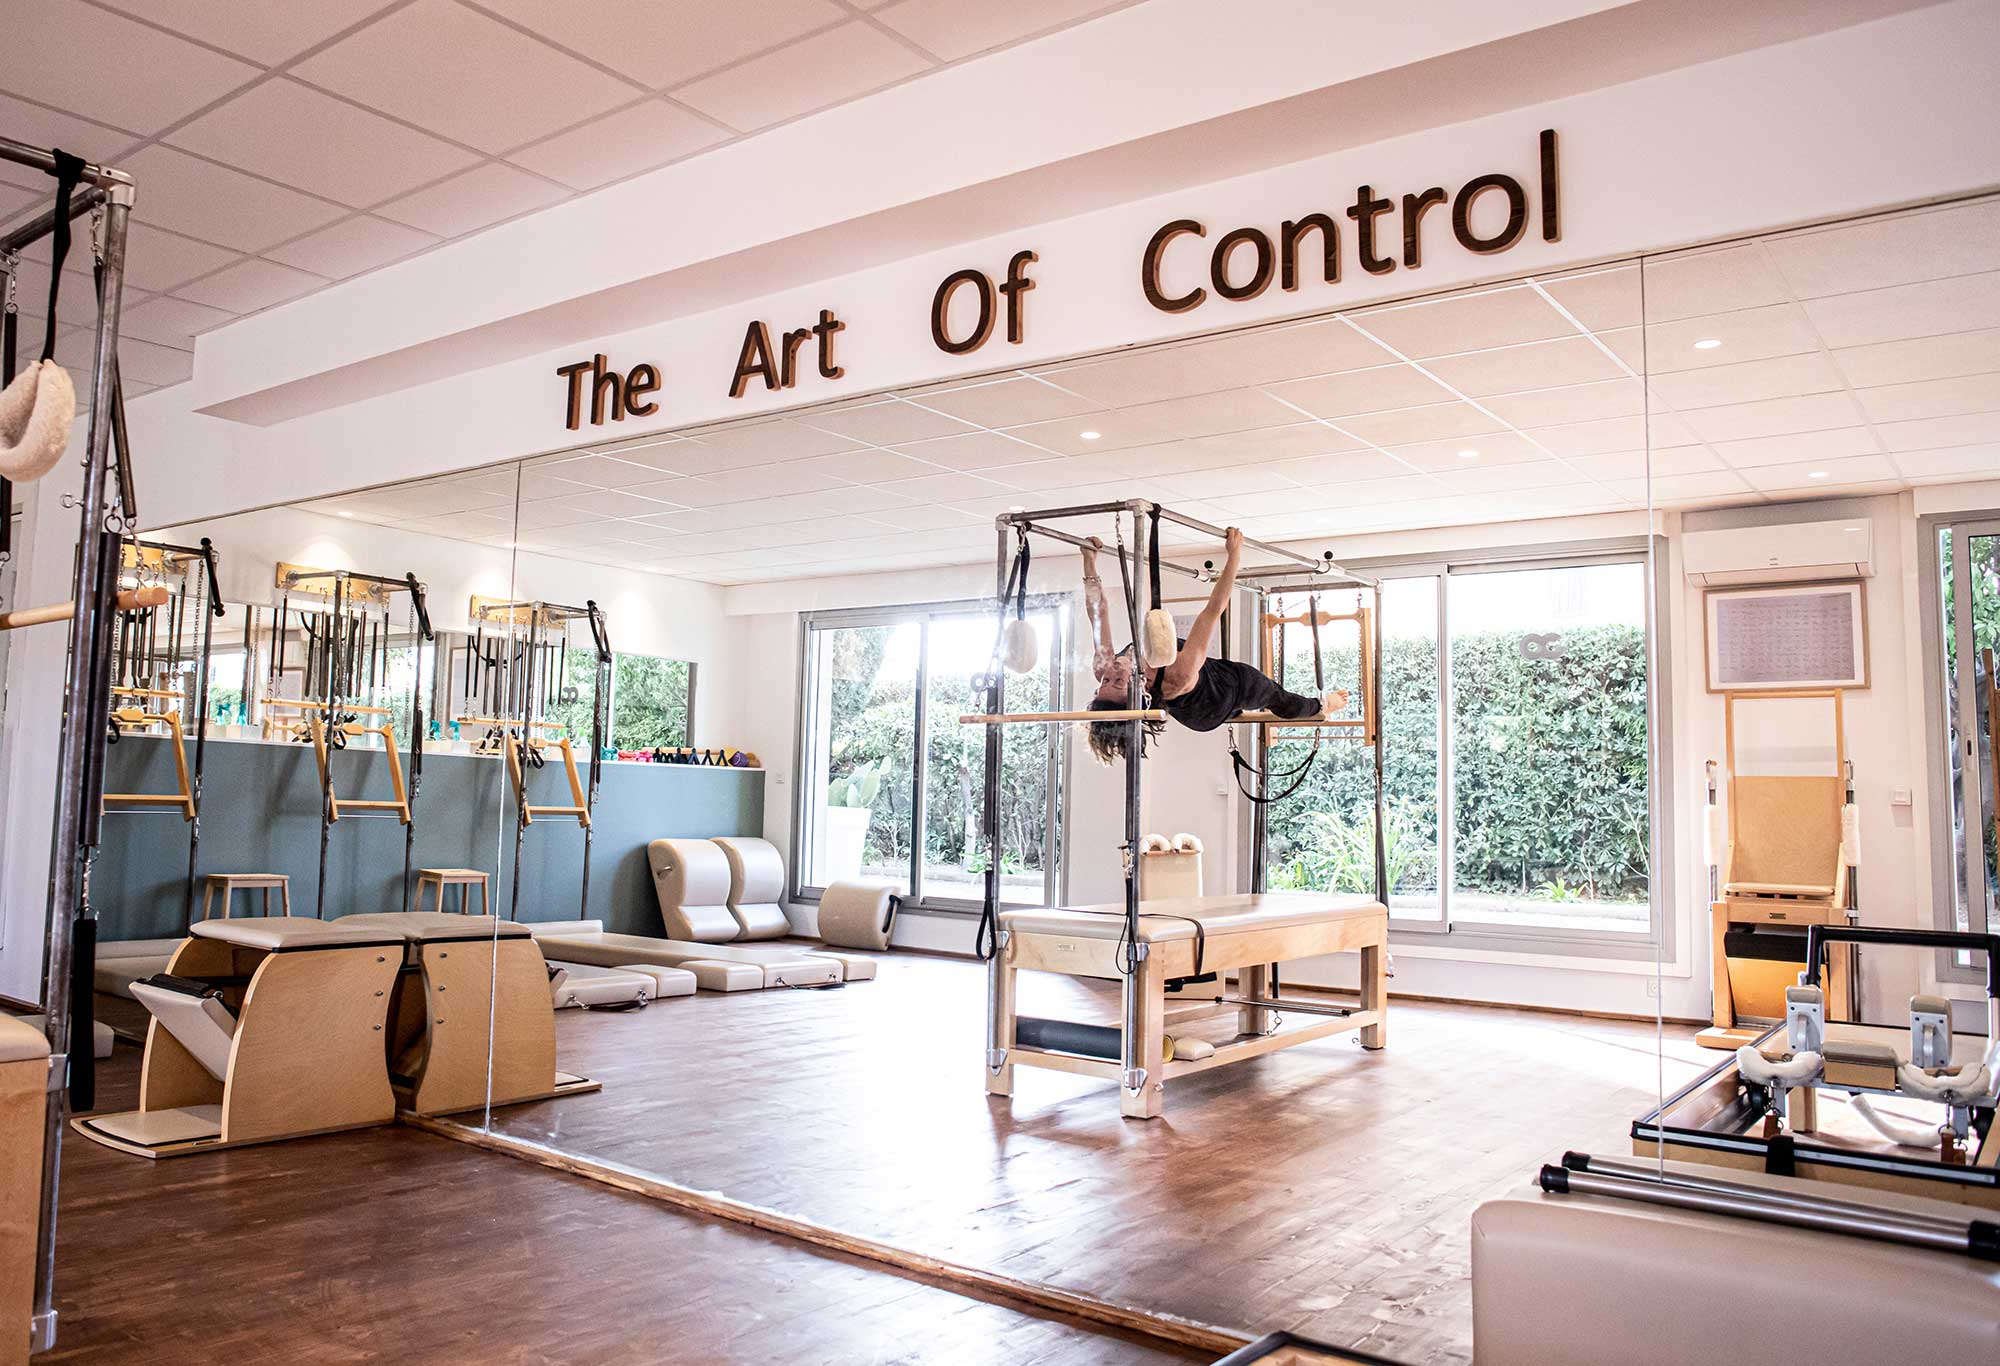 The-Art-of-control-Pilates-dans-les-alpes-maritimes